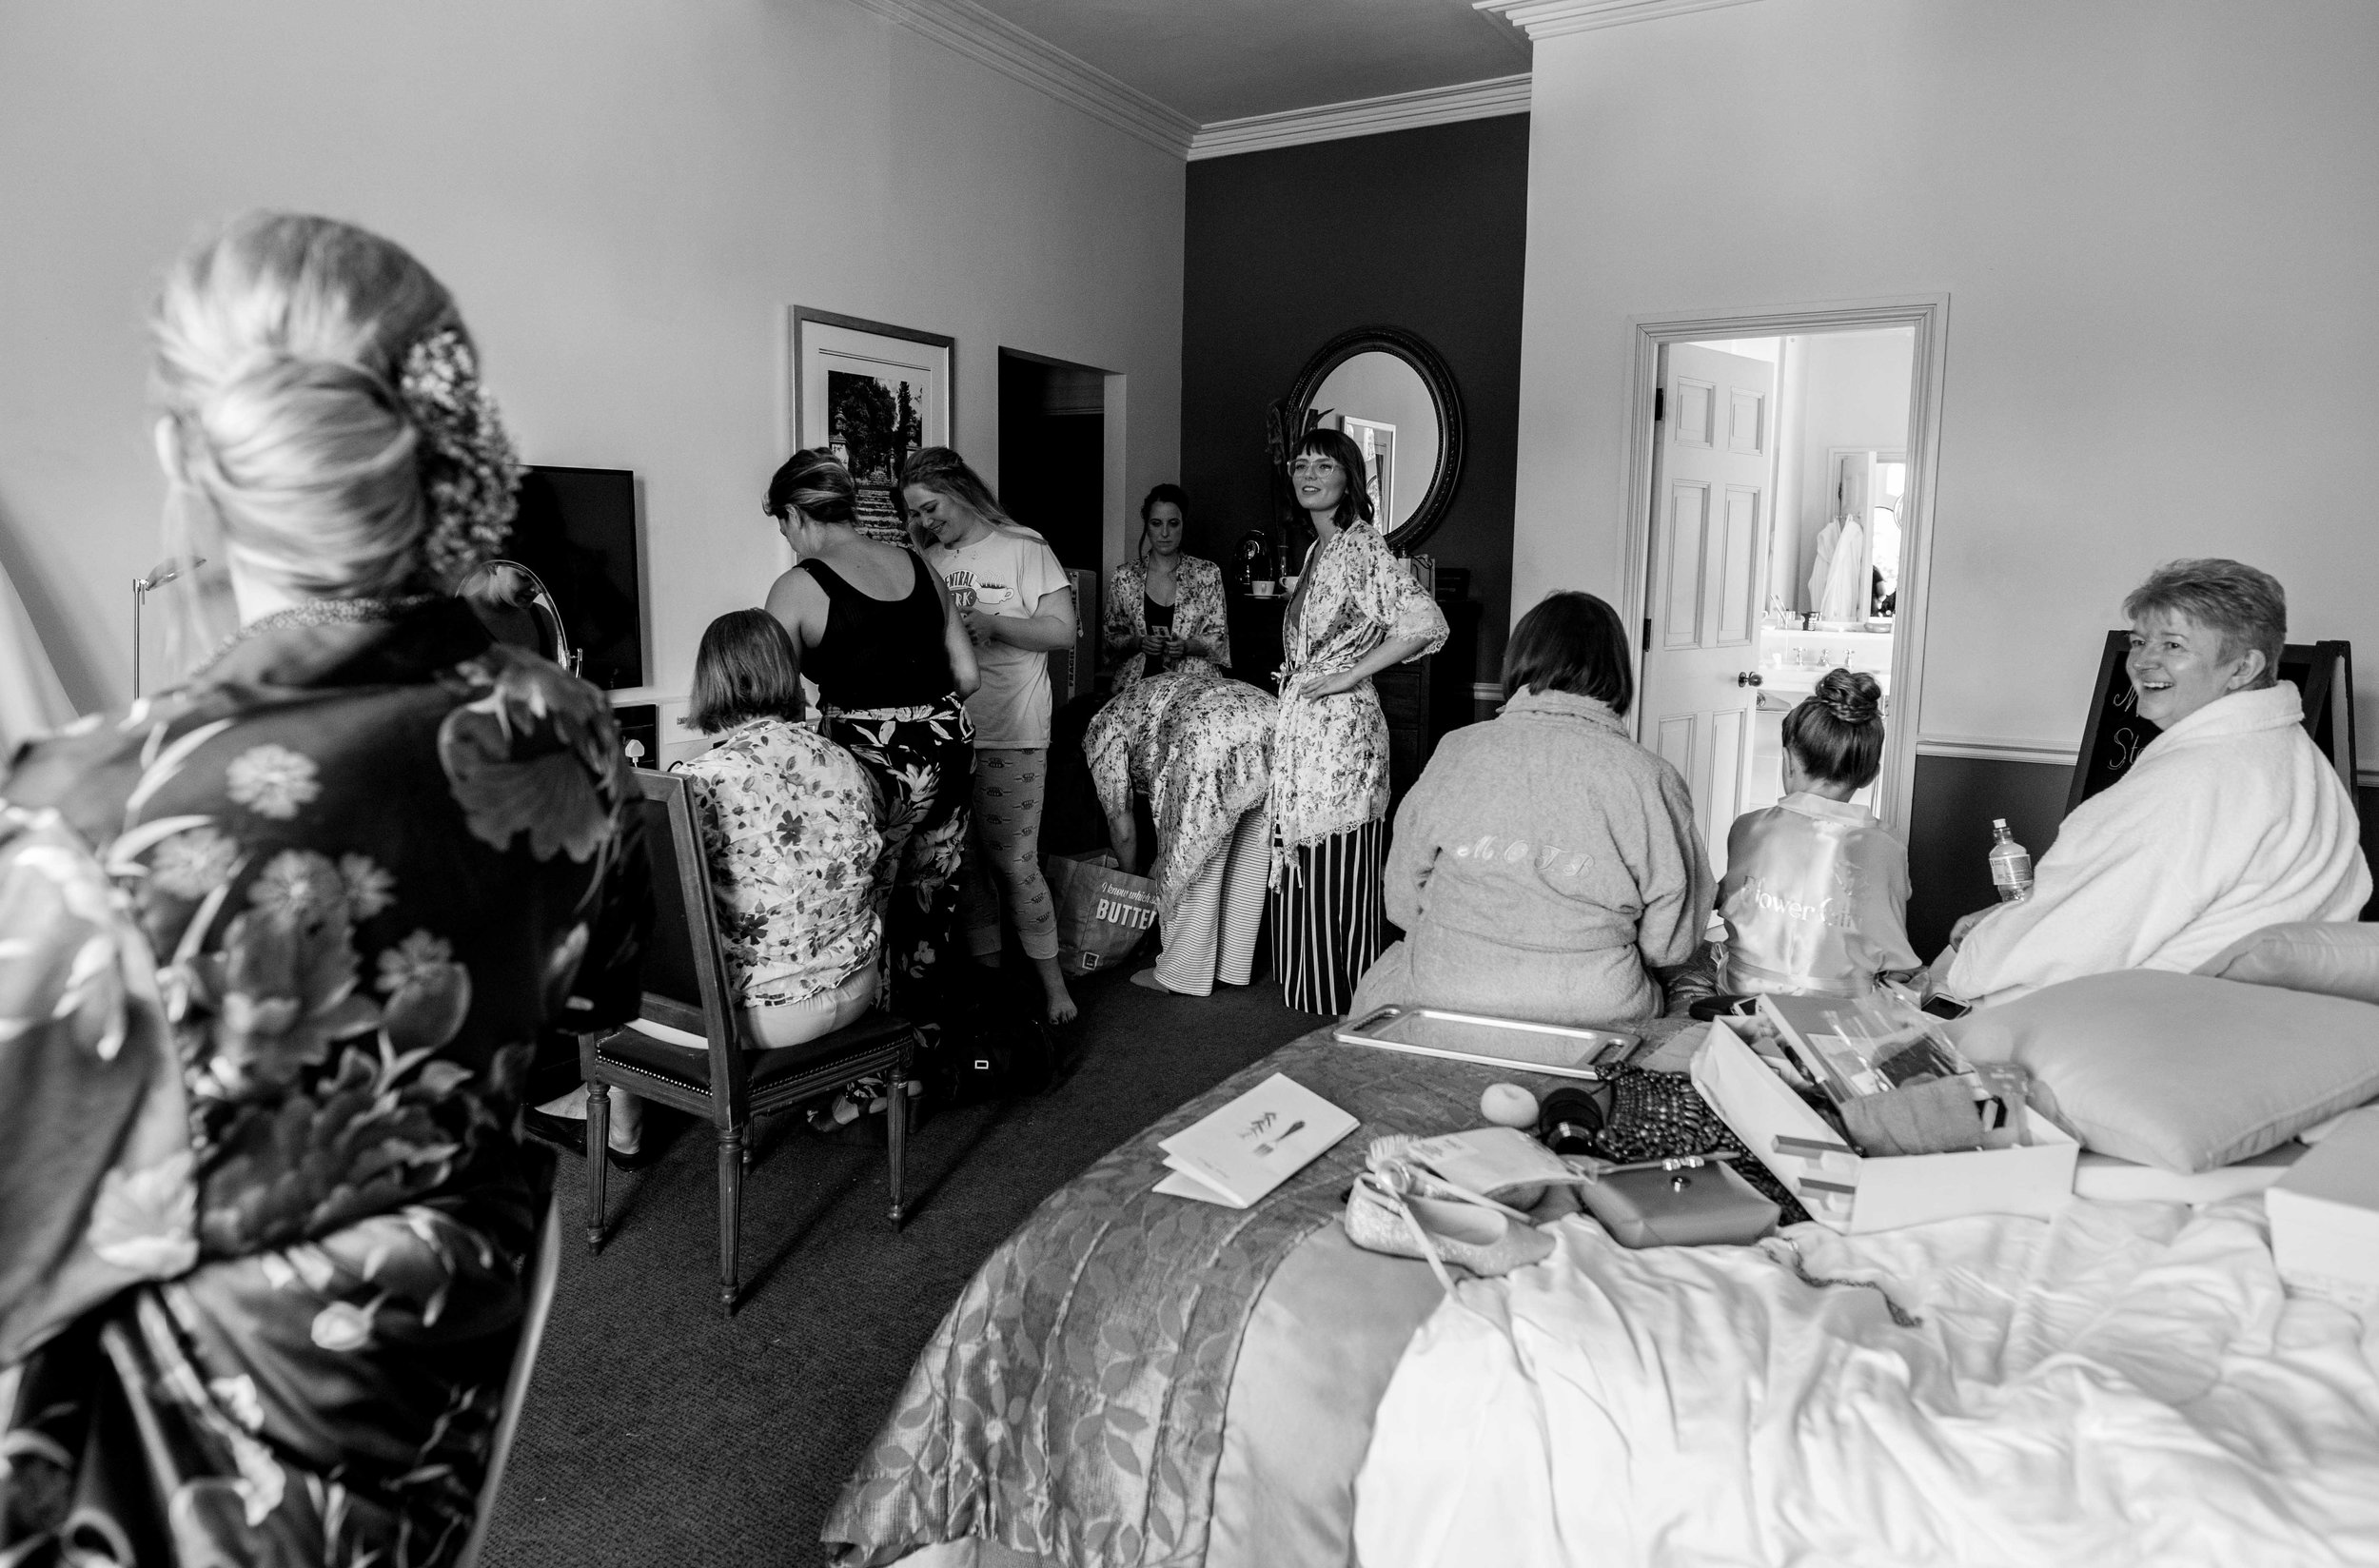 A room full of chaos during bridal preps